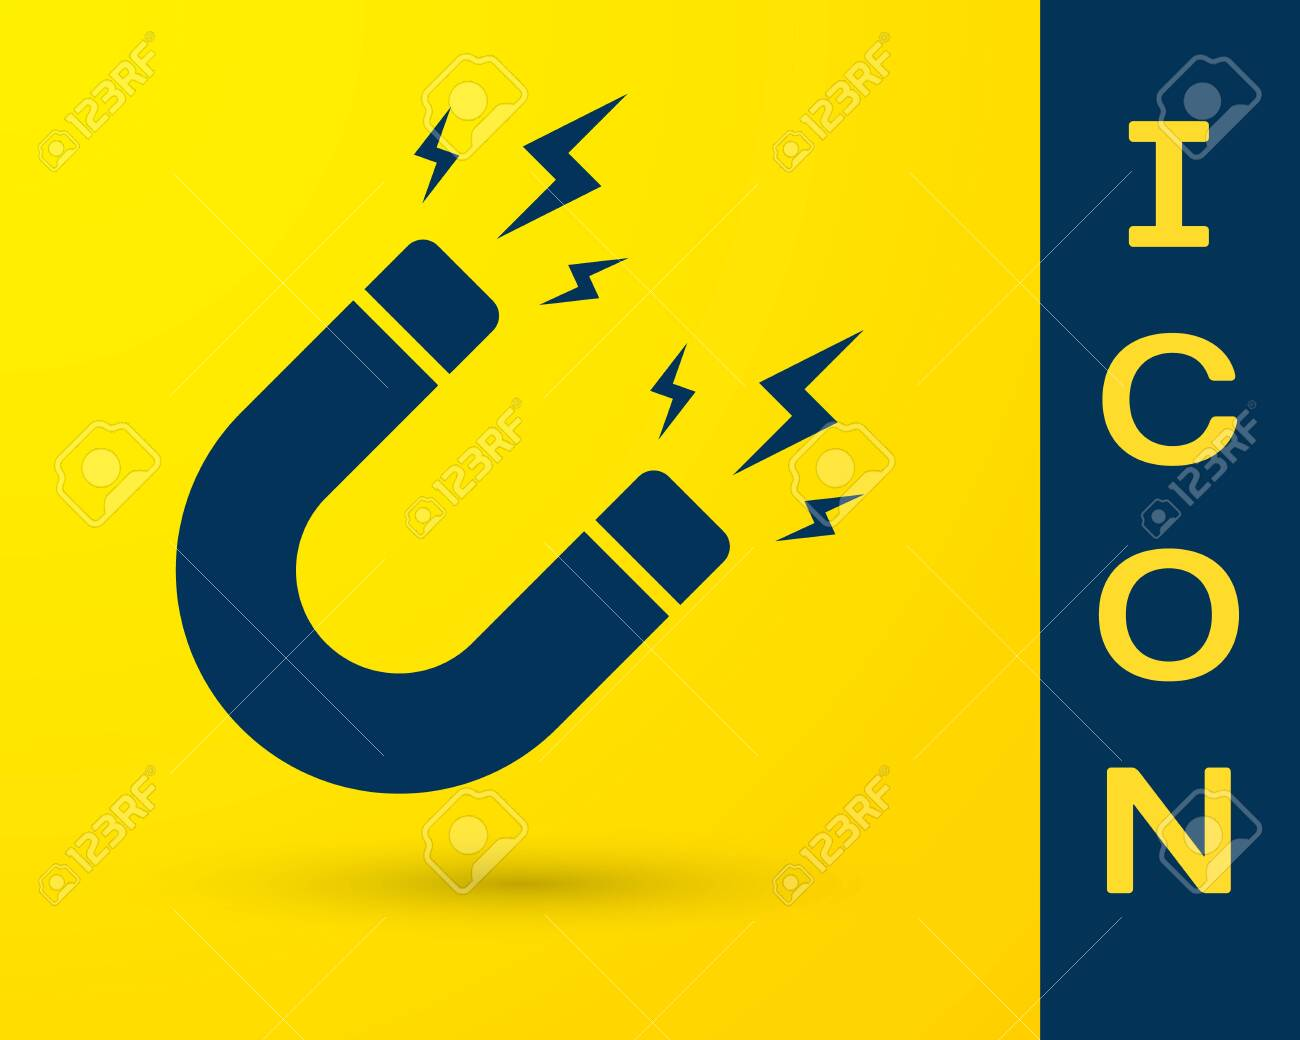 Blue Magnet With Lightning Icon Isolated On Yellow Background 1300x1040